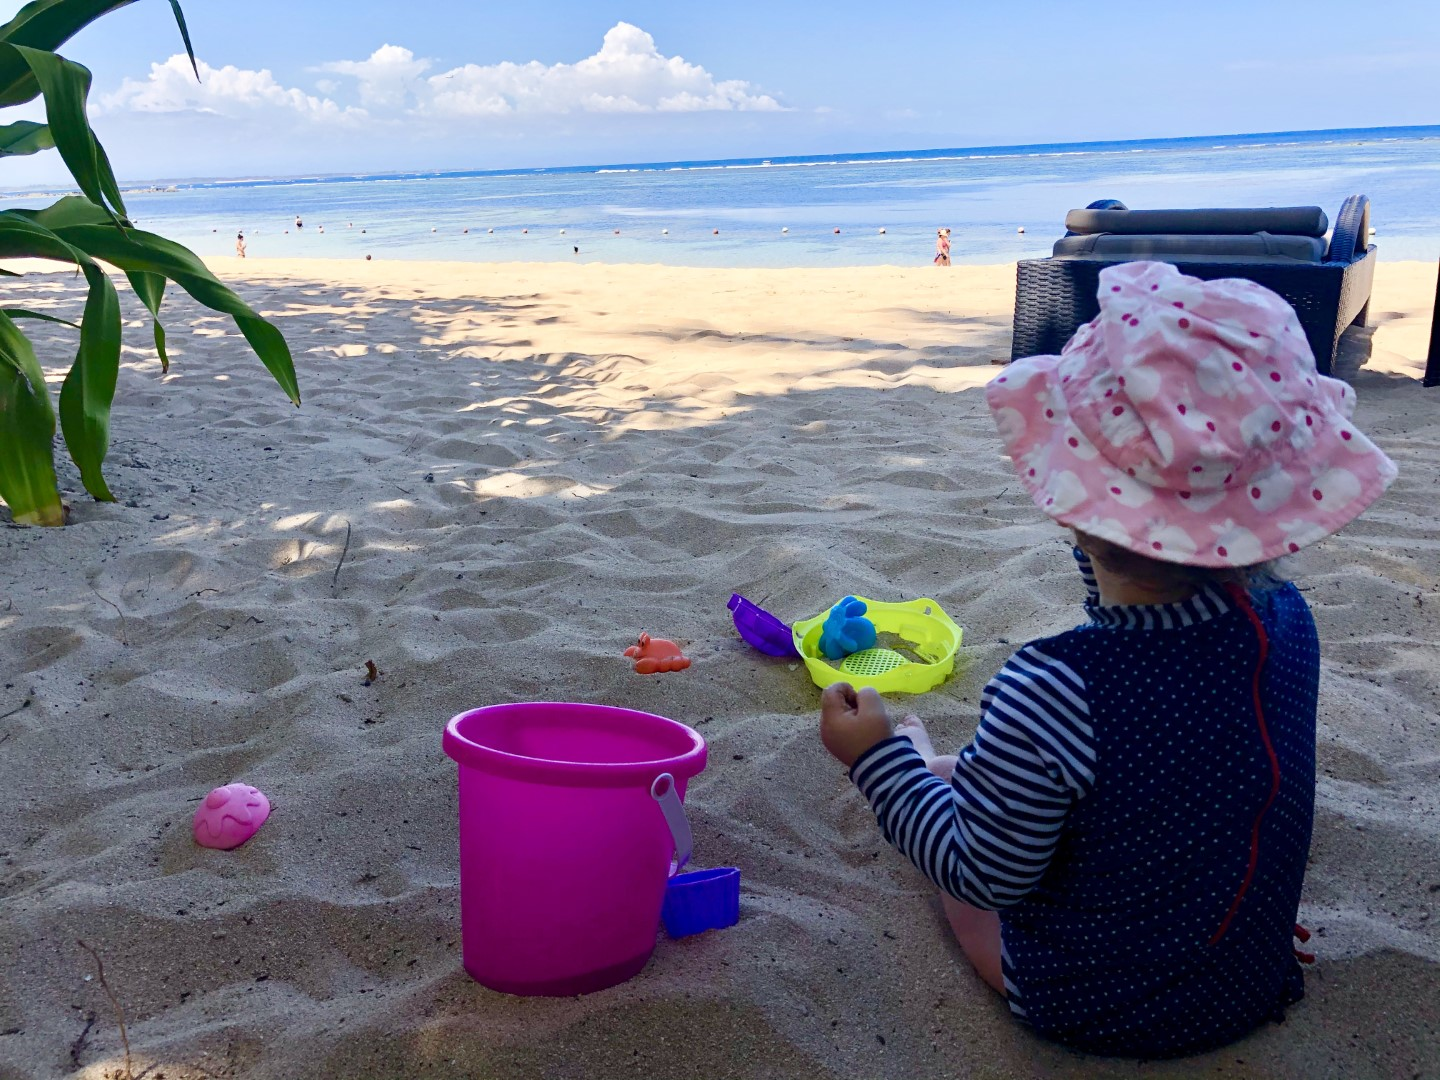 Baby-Test: Sandburgen bauen auf Bali – im Laguna Luxury Collection Resort & Spa